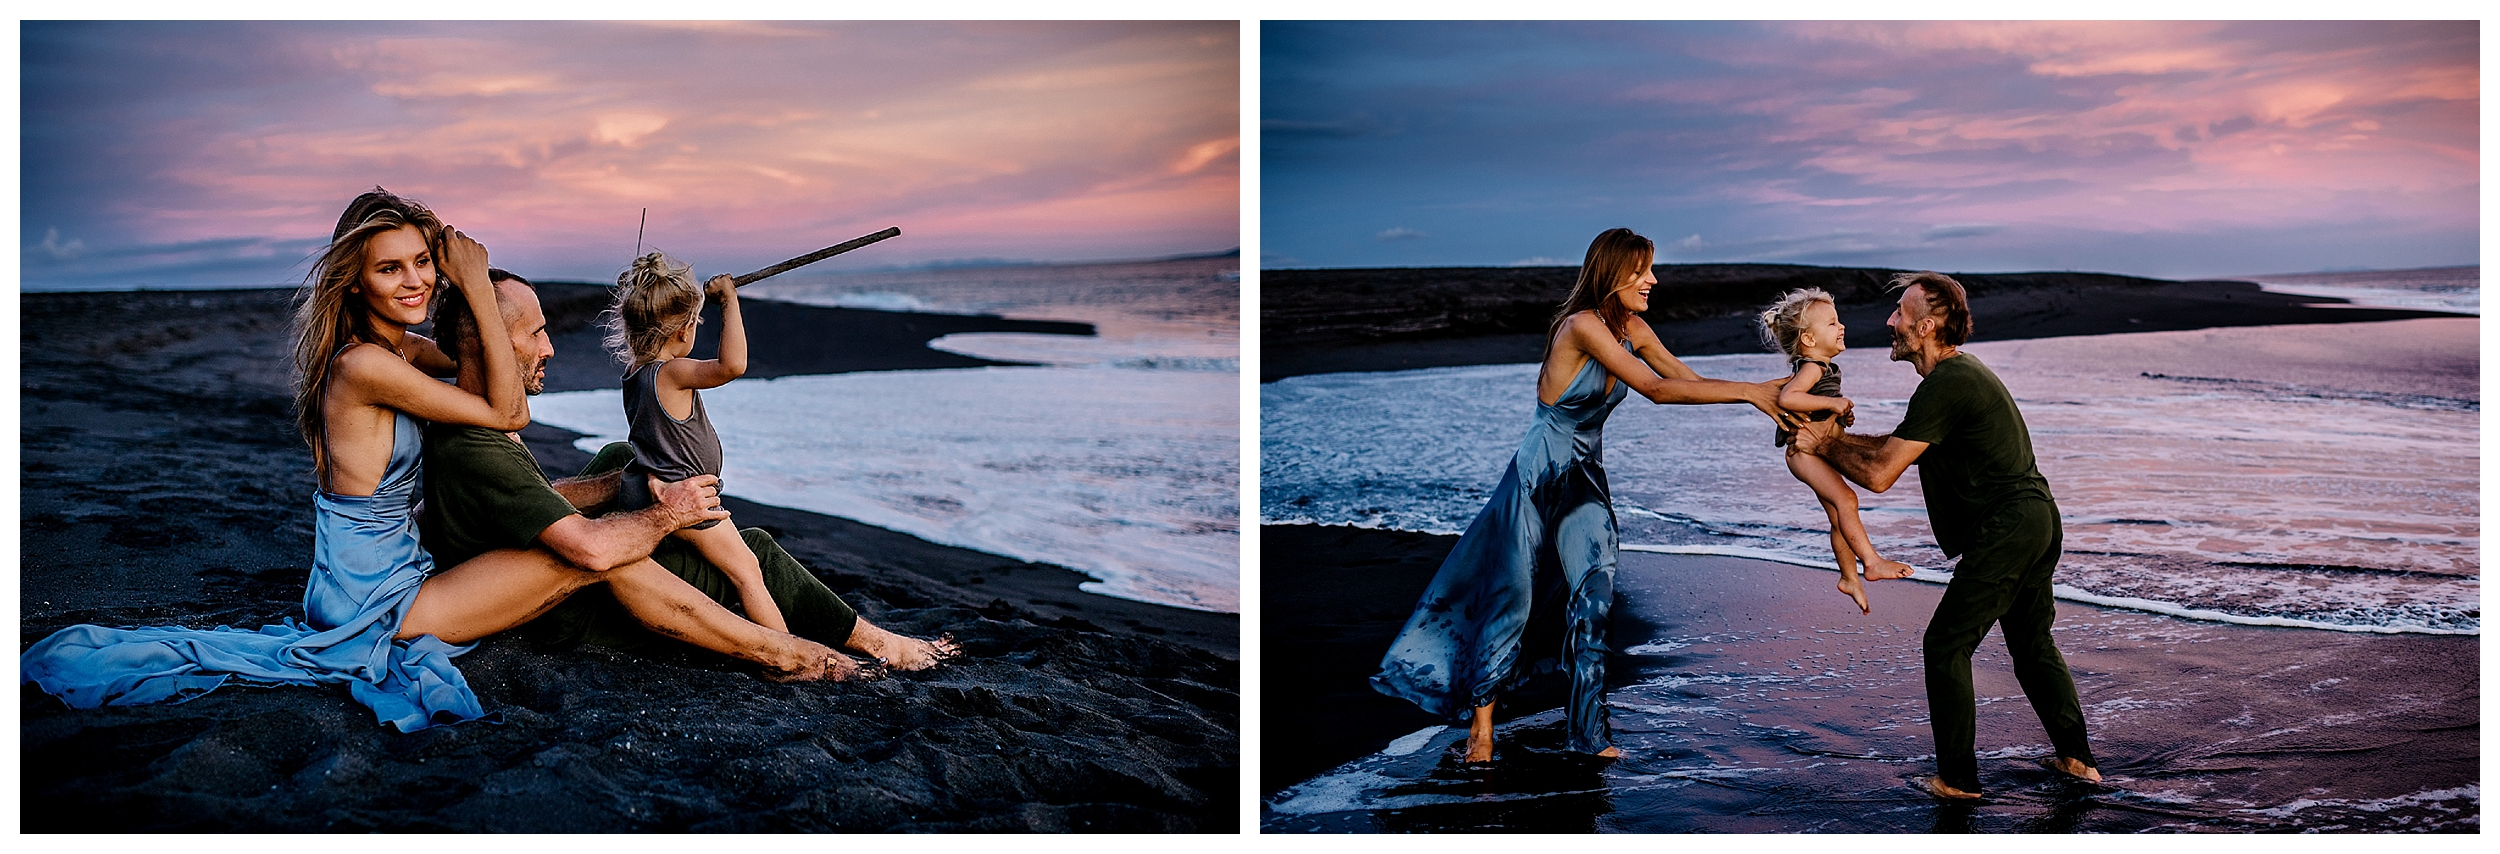 bali-black-sand-beach-engagement-session-Bali-wedding-photographer01.jpg